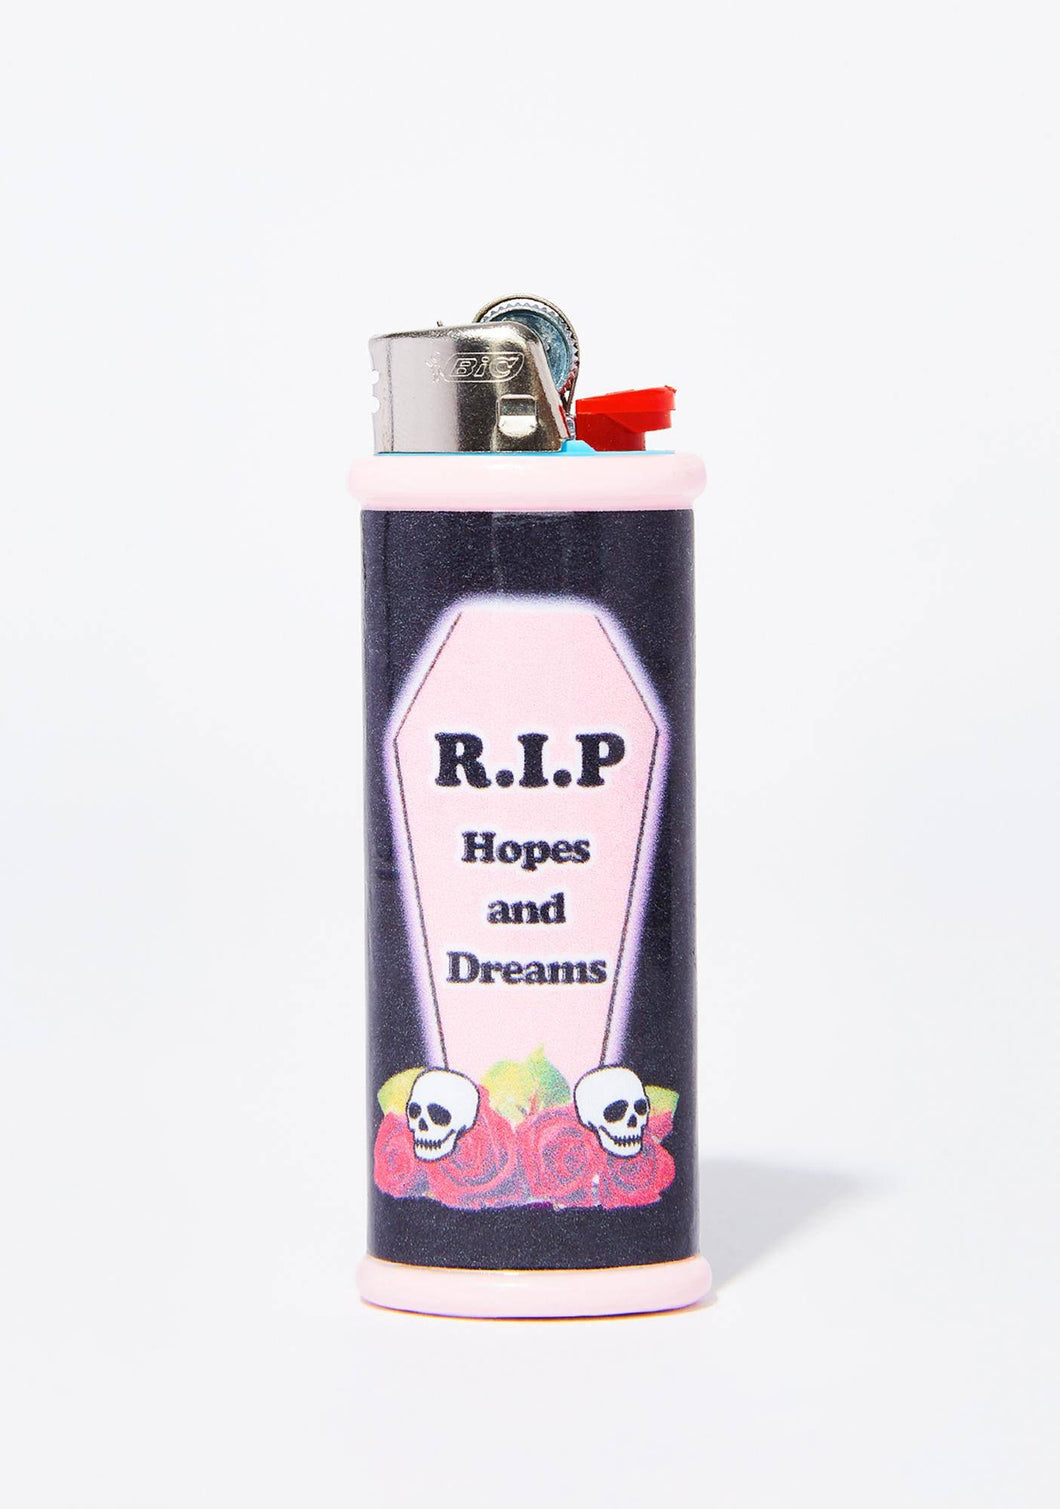 R.I.P Hopes And Dreams Bic Lighter Case